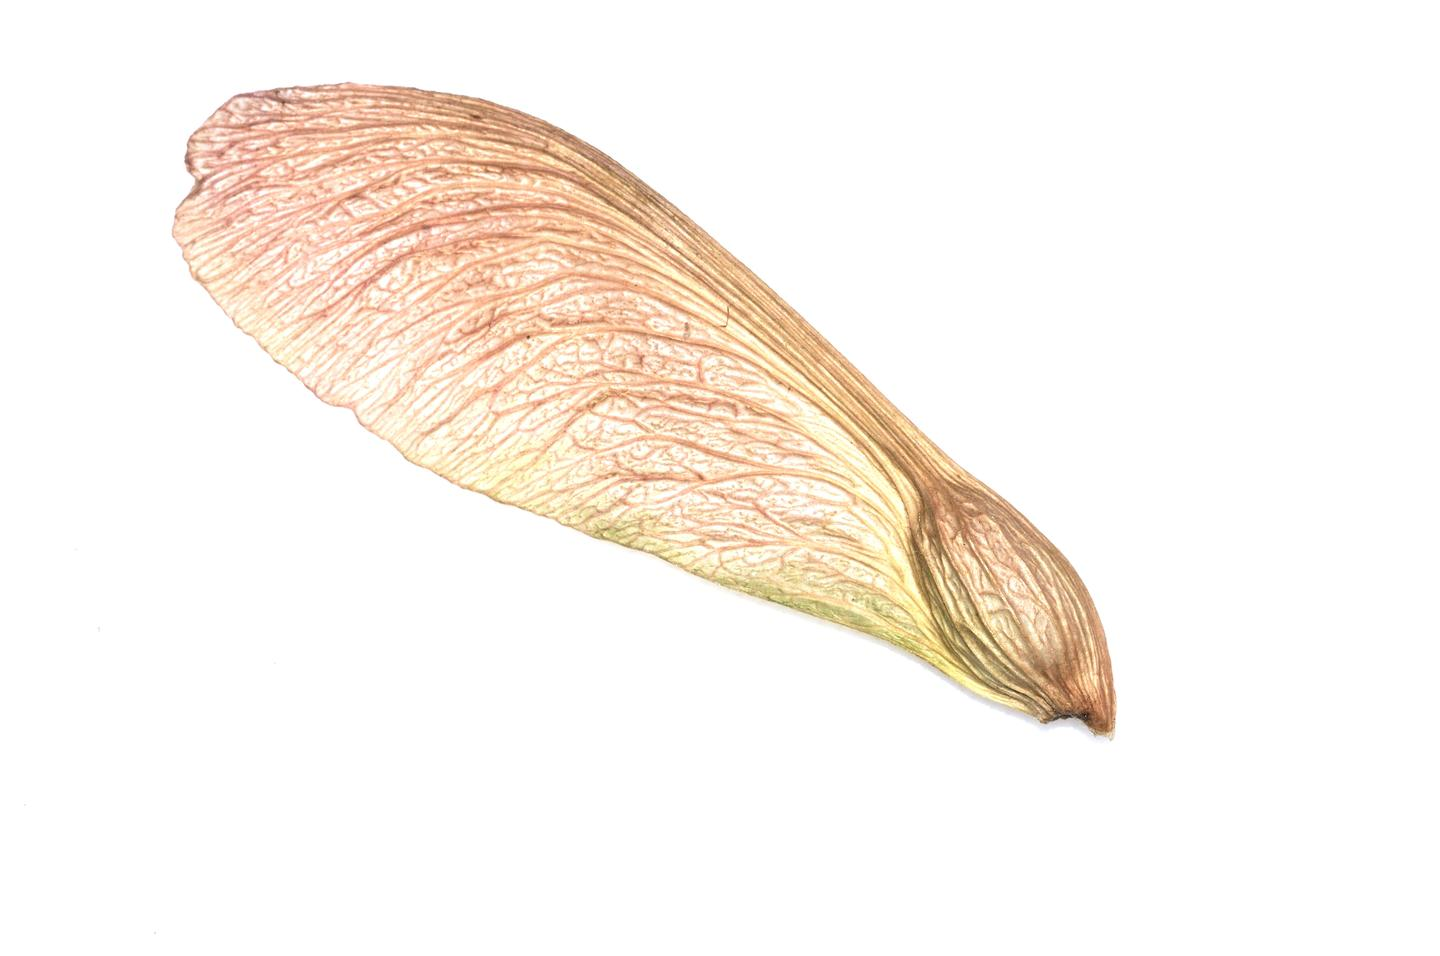 The venerable maple seed on which the Samara UAV is based (Photo: Shutterstock)